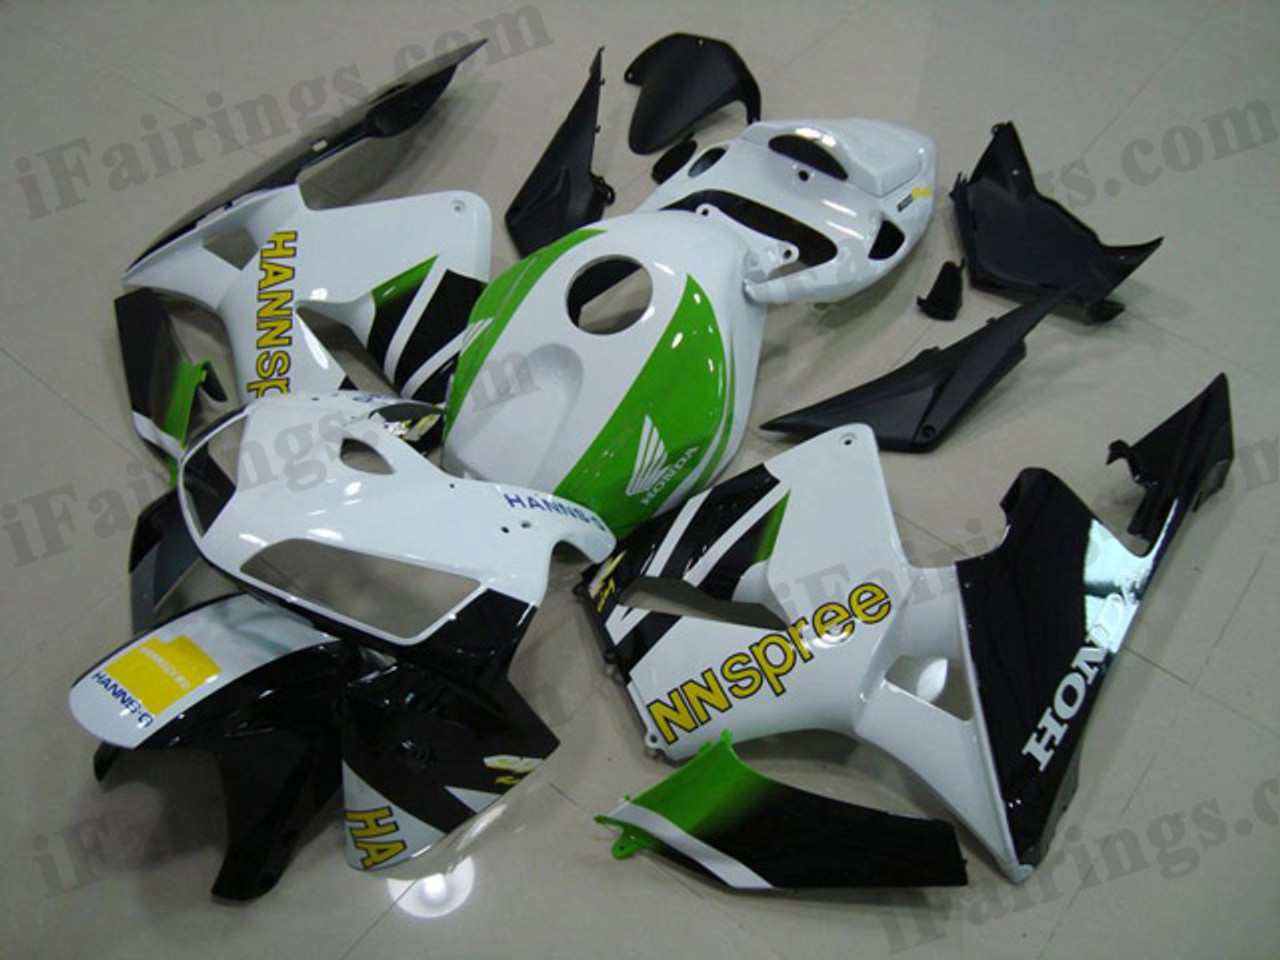 Aftermarket Fairing Kits For 2005 2006 Cbr600rr Hannspree Decals